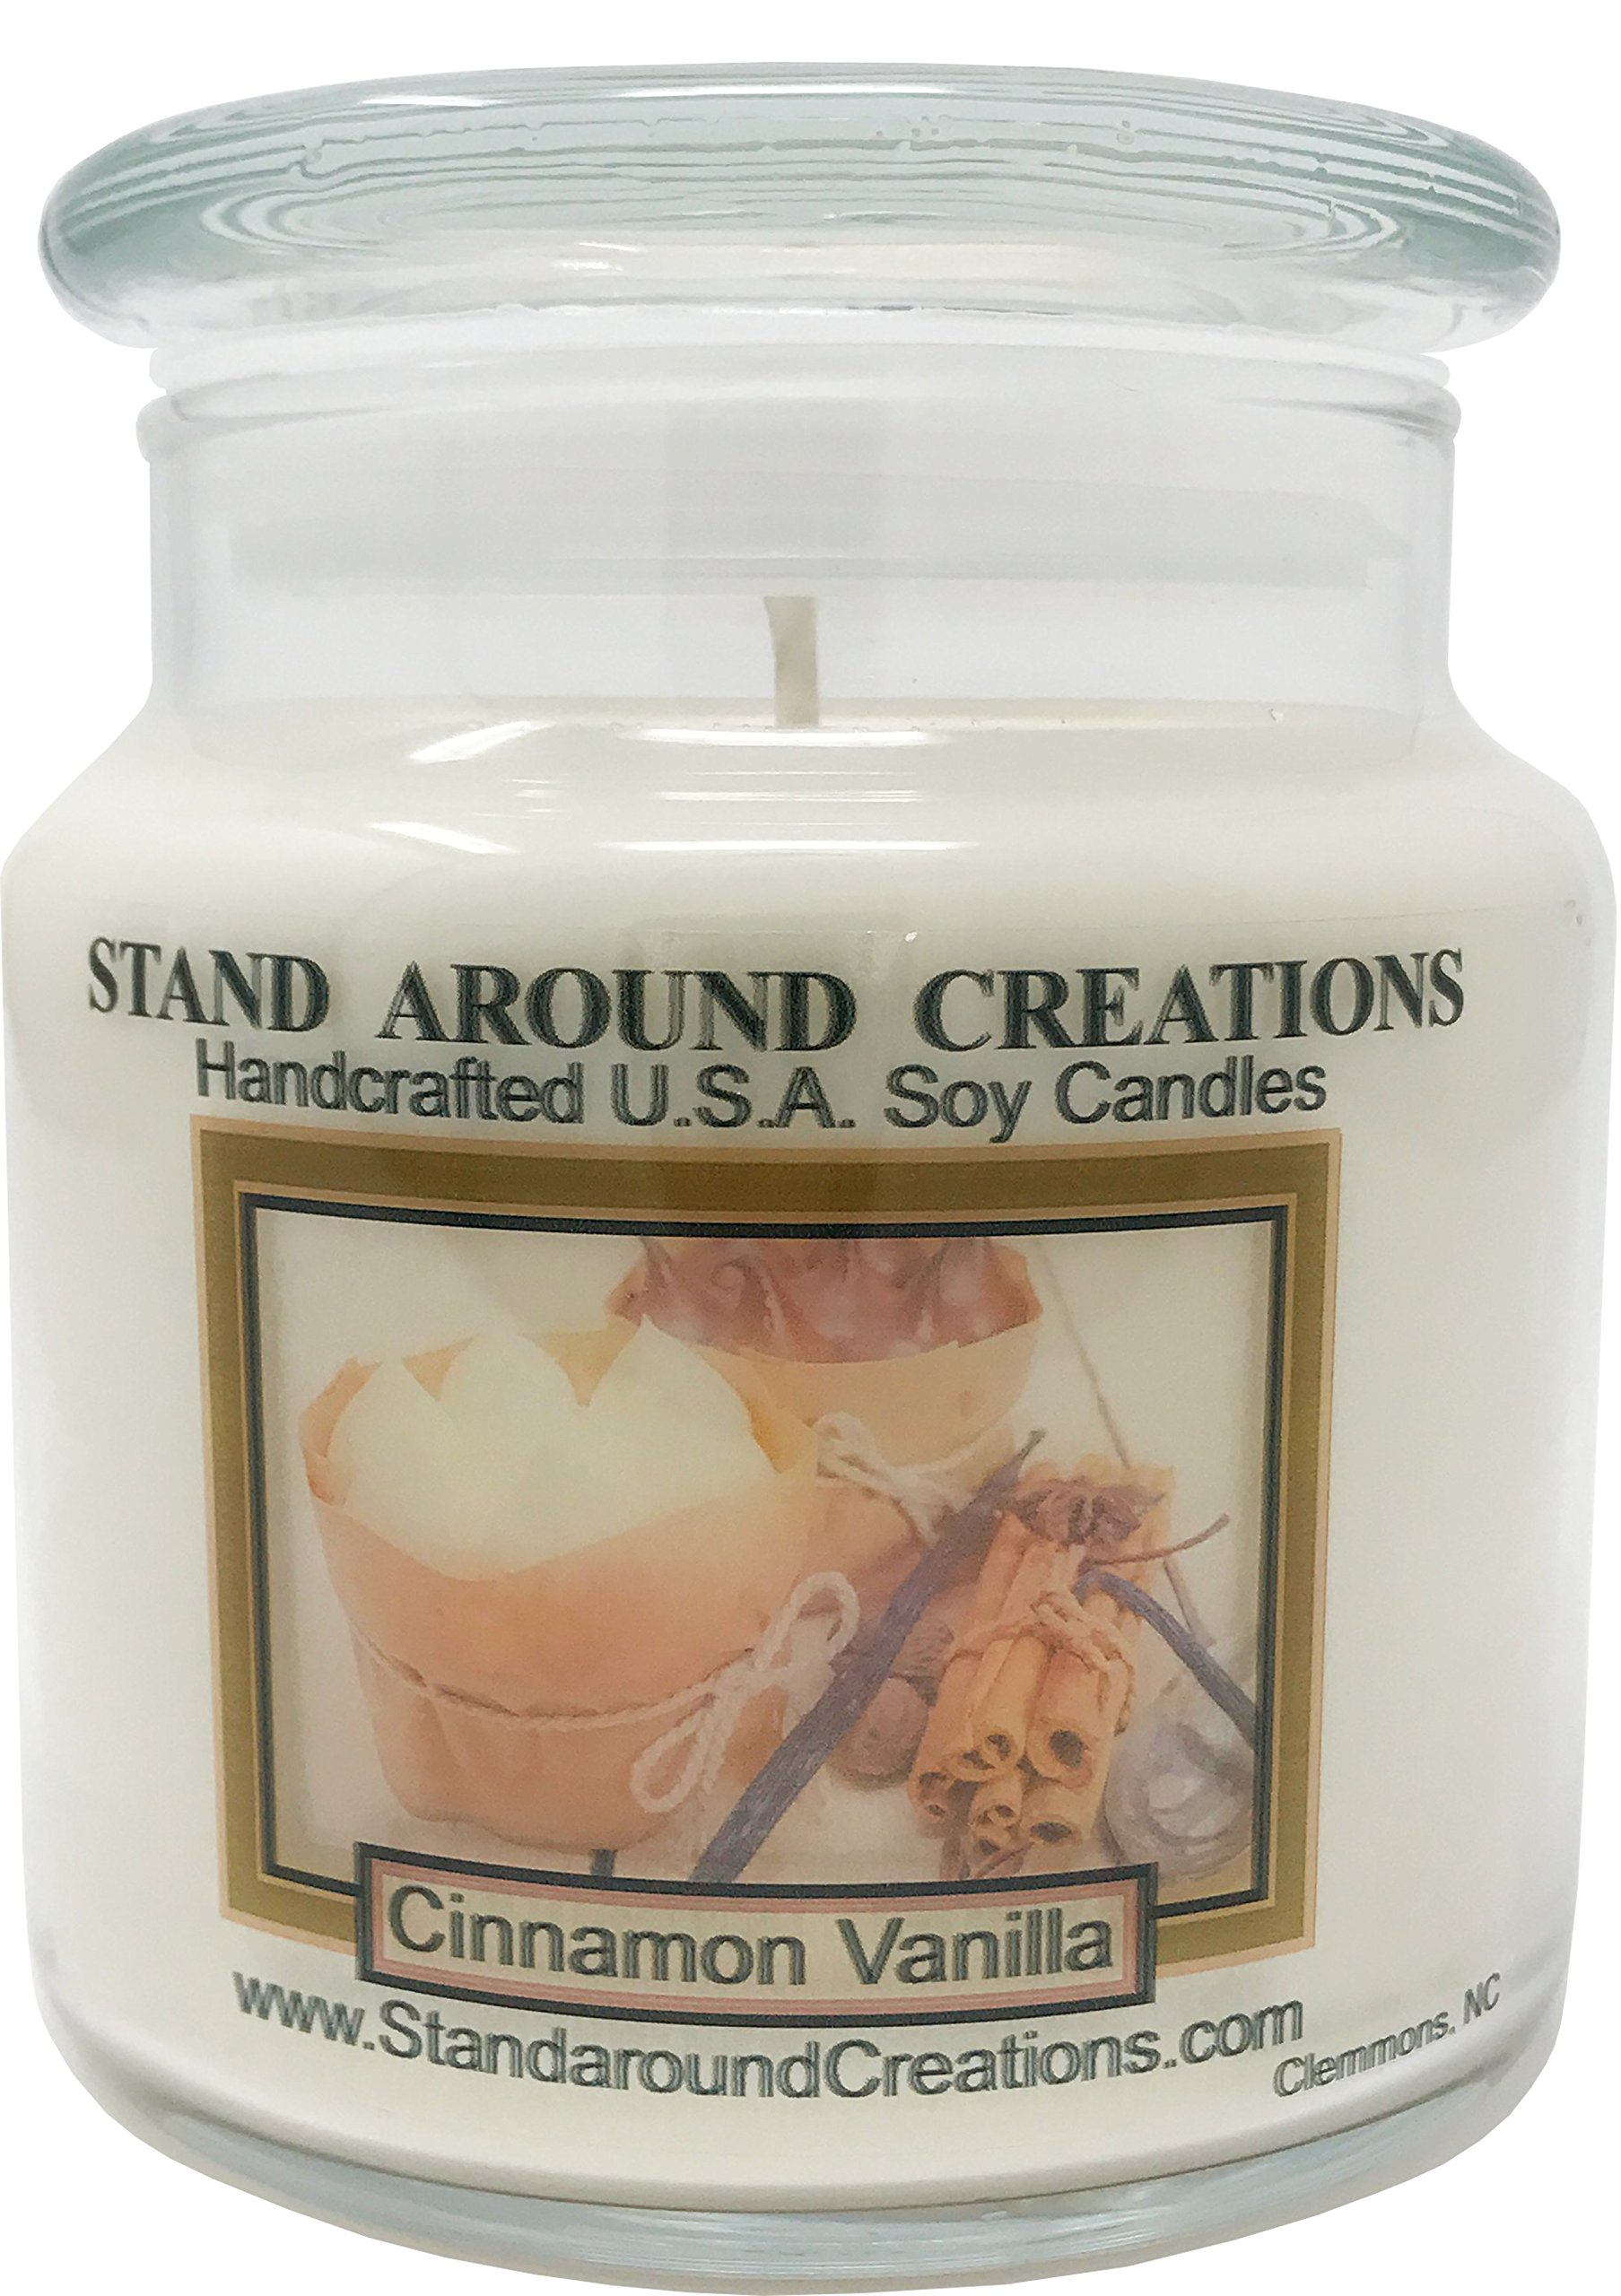 Stand Around Creations Premium 100% Soy Apothecary Candle - 16 oz. - Cinnamon Vanilla - The scent of spicy cinnamon w/sweet vanilla.